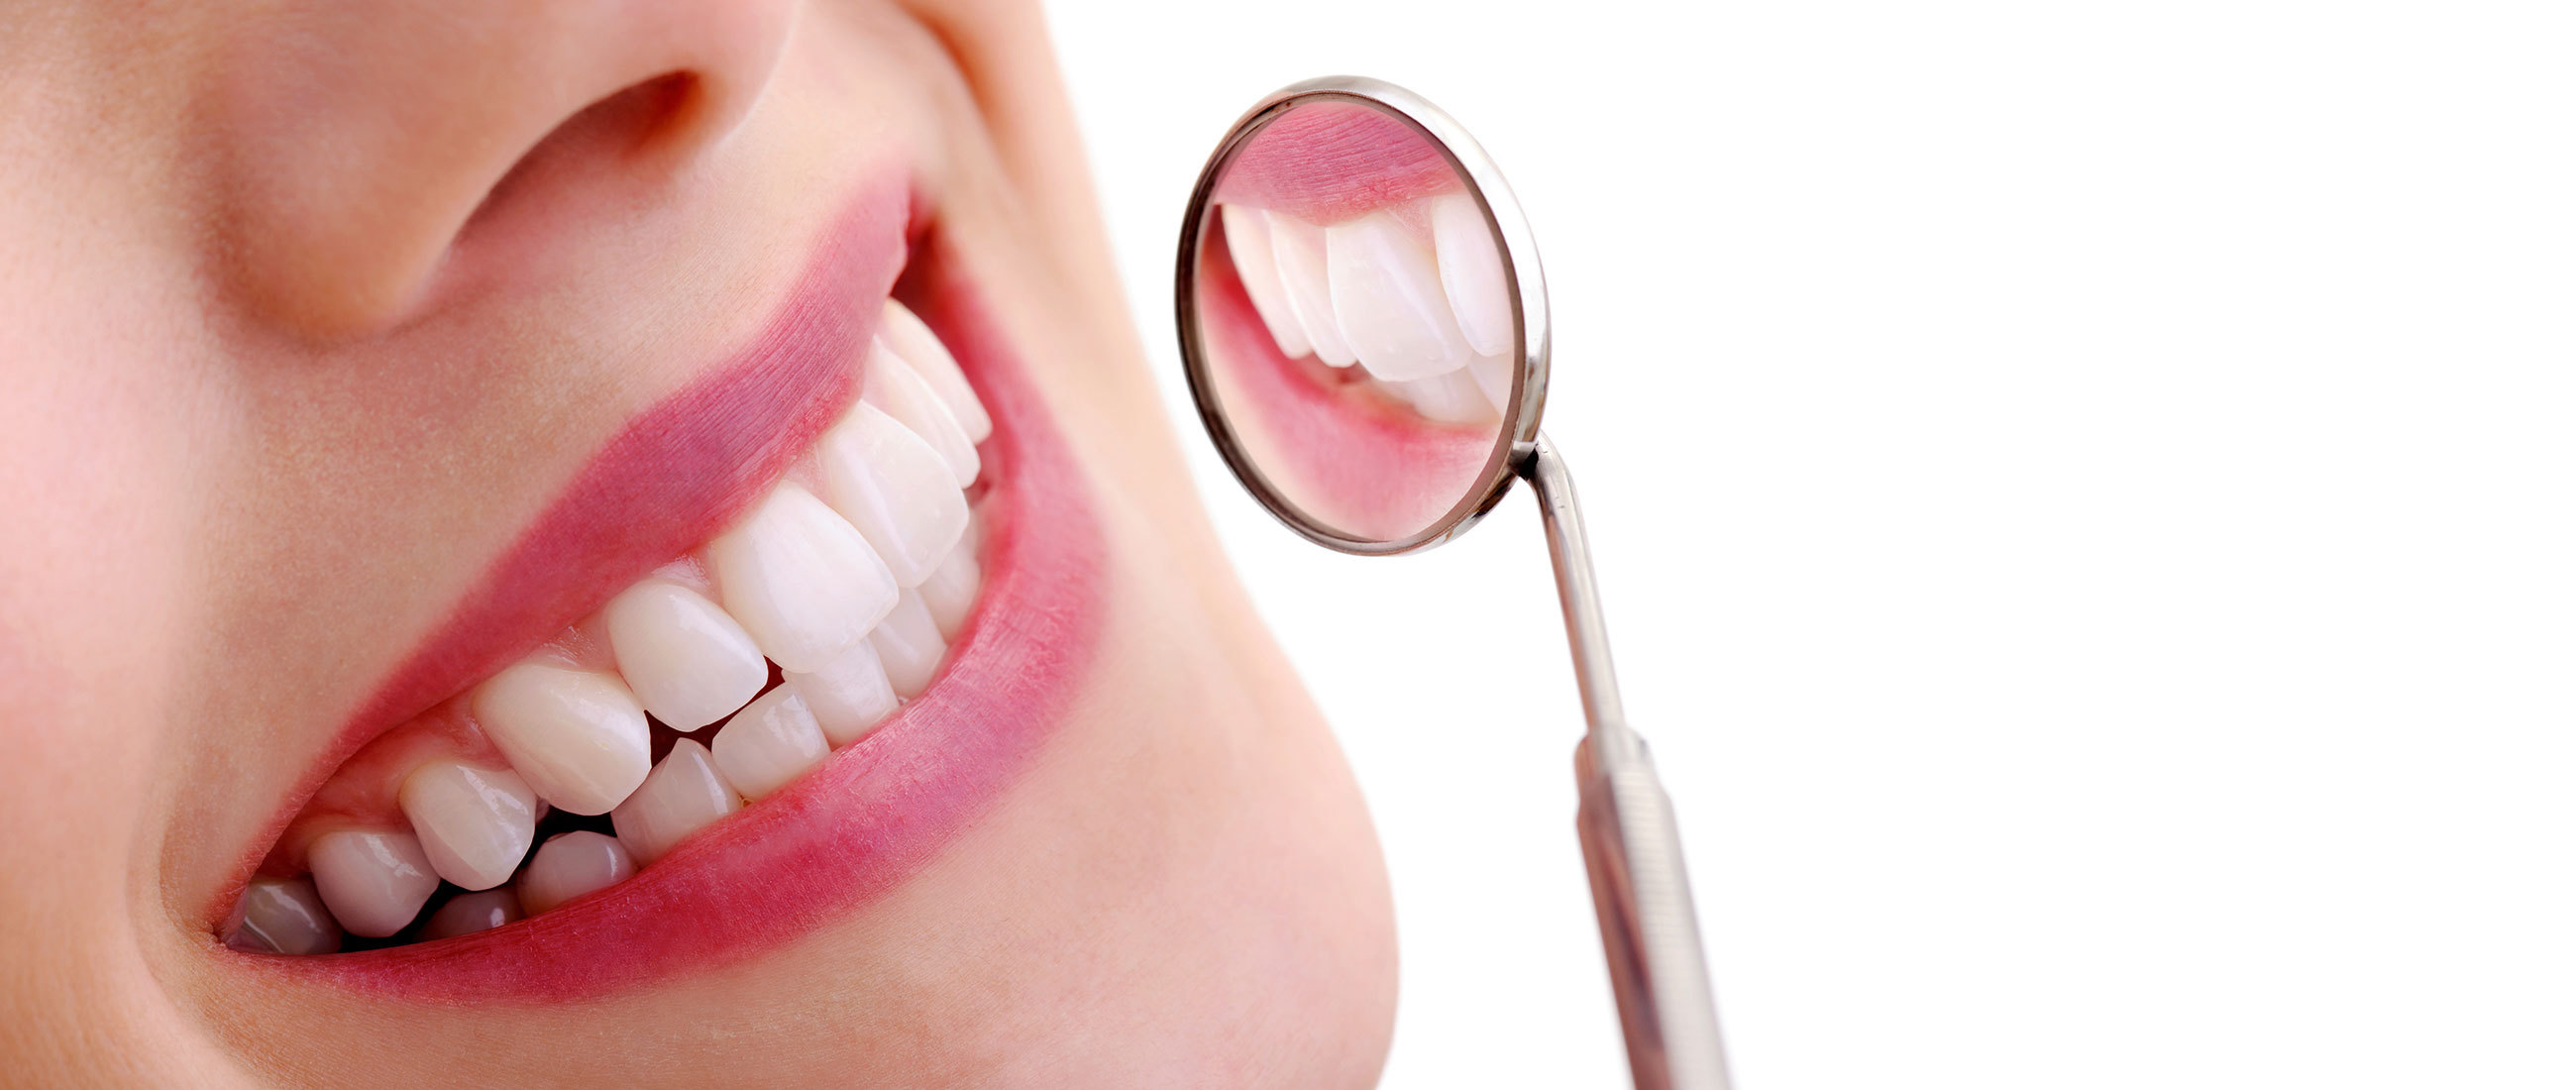 Dental Cleaning In Glendale 1